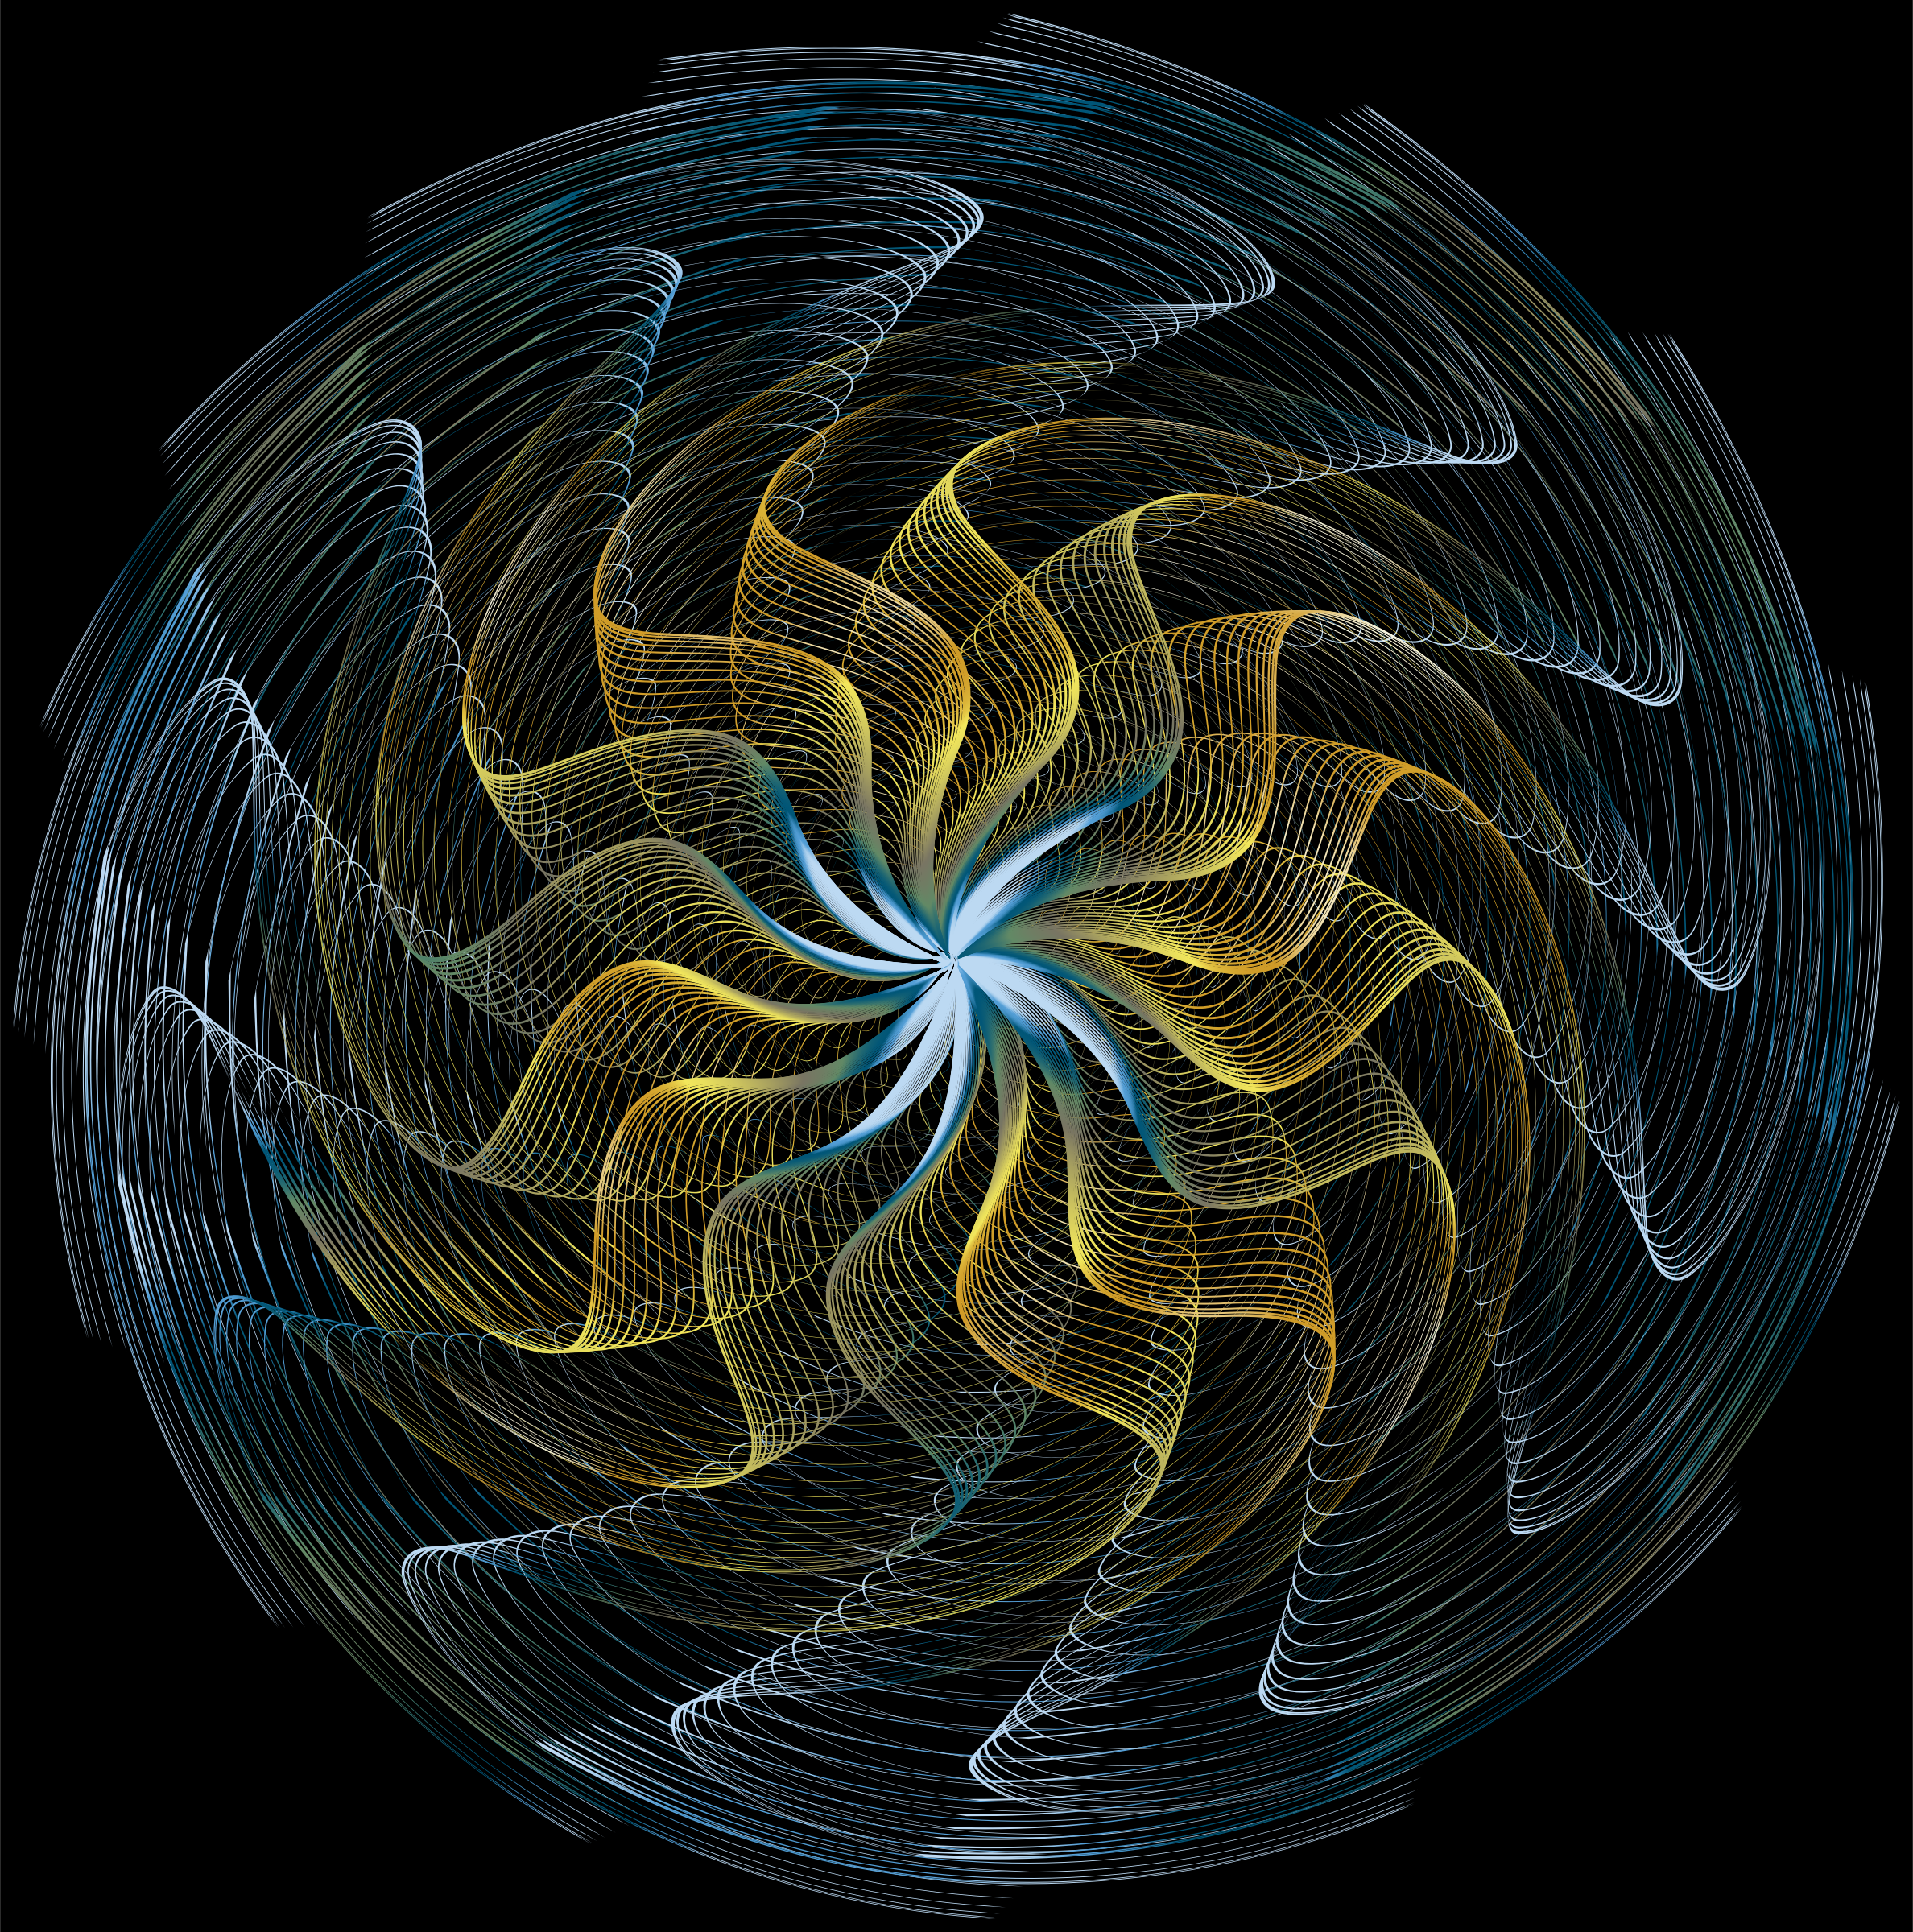 Colorful Wavy Vortex Line Art 3 by GDJ